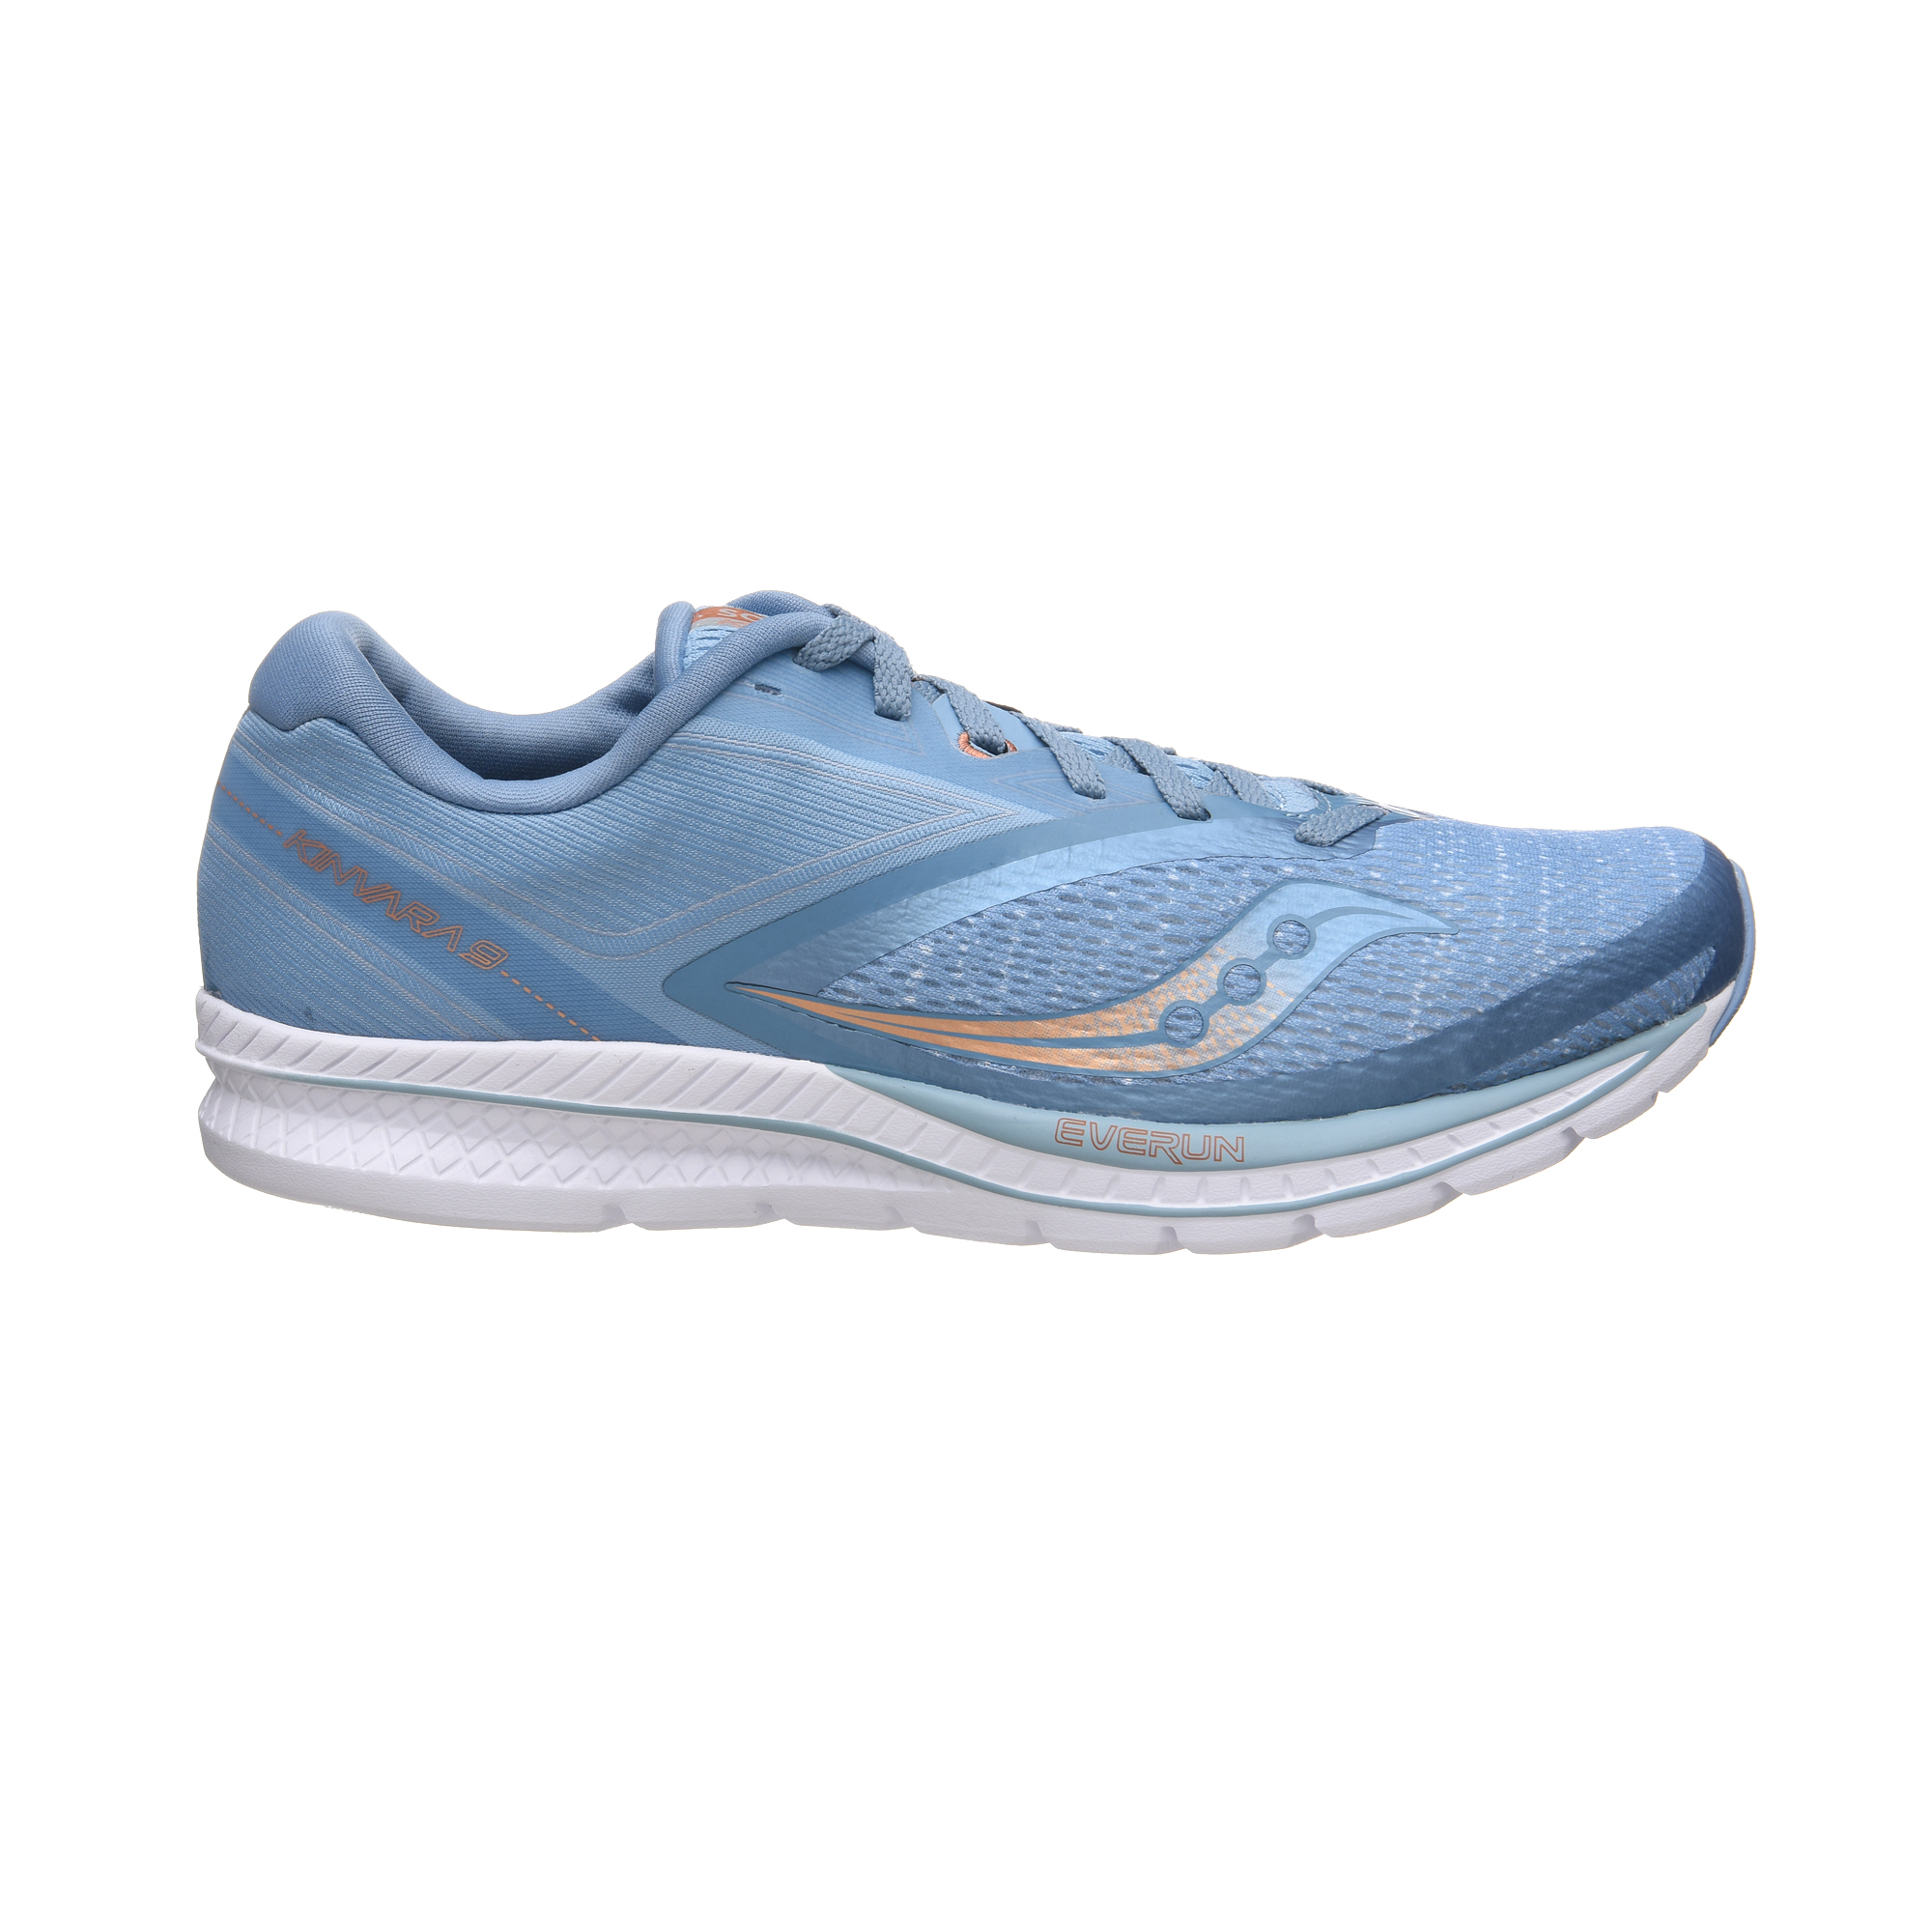 new product a8708 2b3c1 Saucony Women's Kinvara 9 Shoes